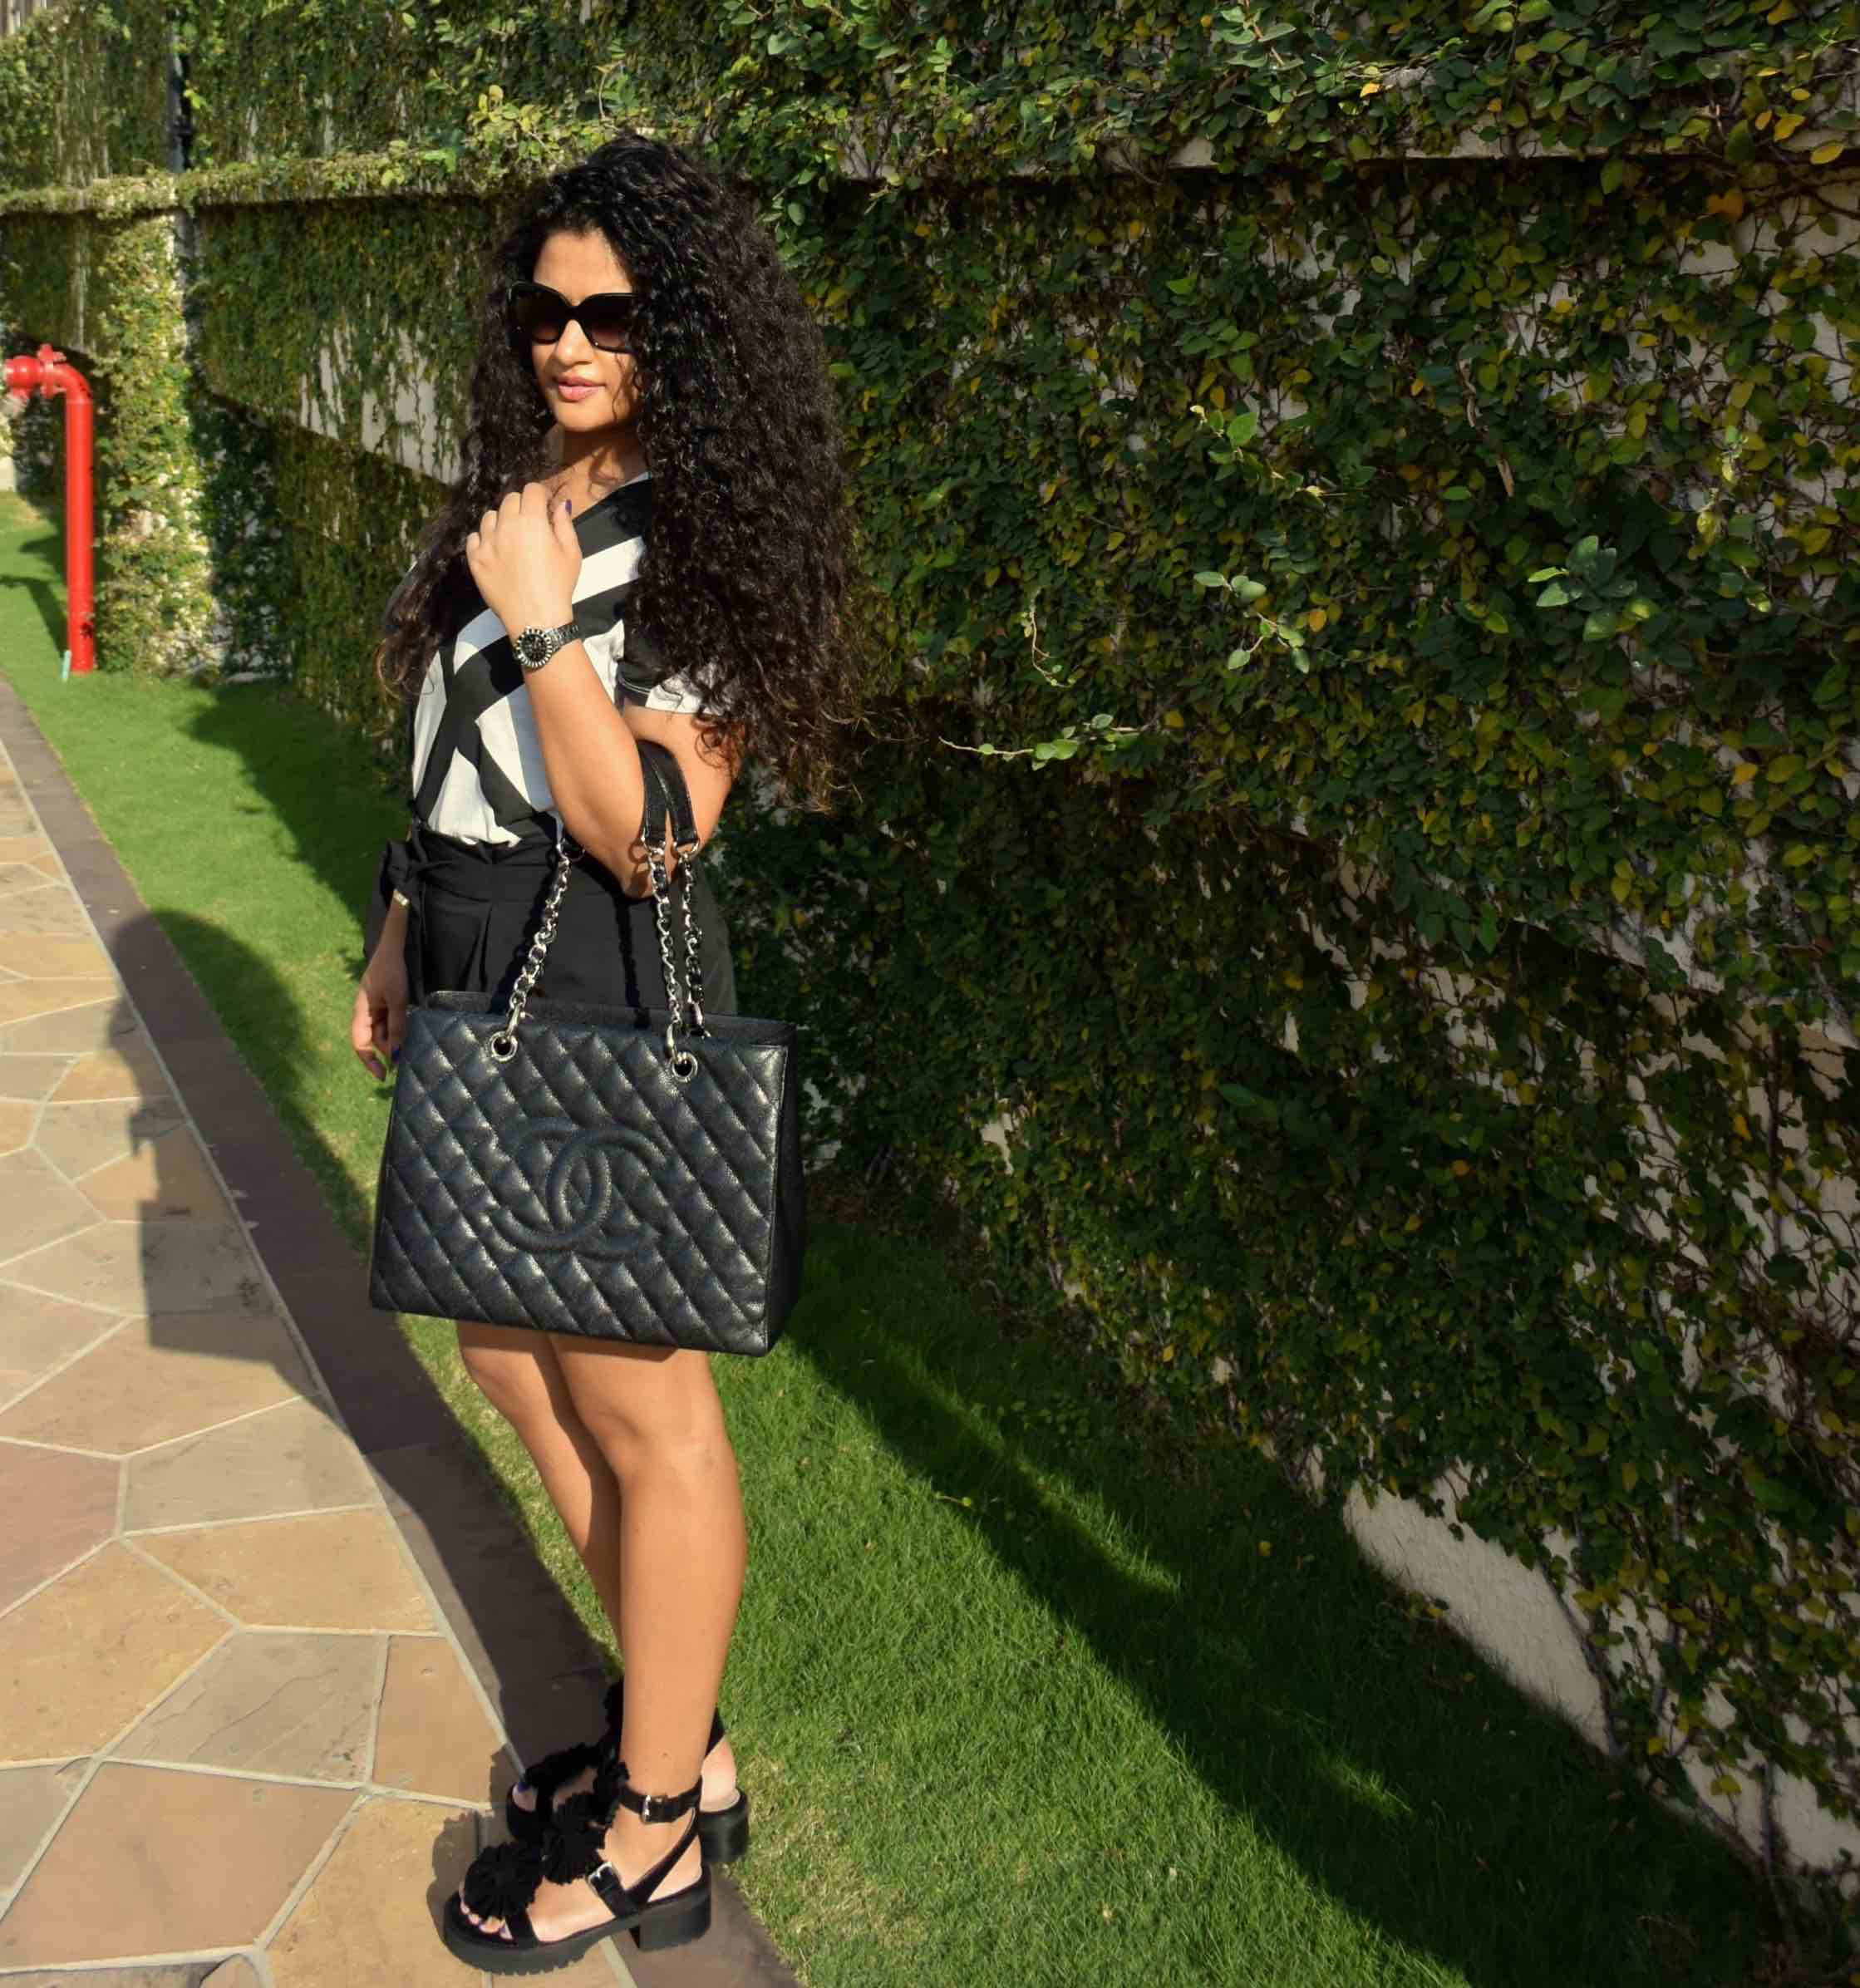 Shorts - Asos, T-shirt - Armani Exchange, Bag -Chanel, Sandals - Chloe for Opening Ceremony, Watch - Dior & Sunglasses - Chanel.